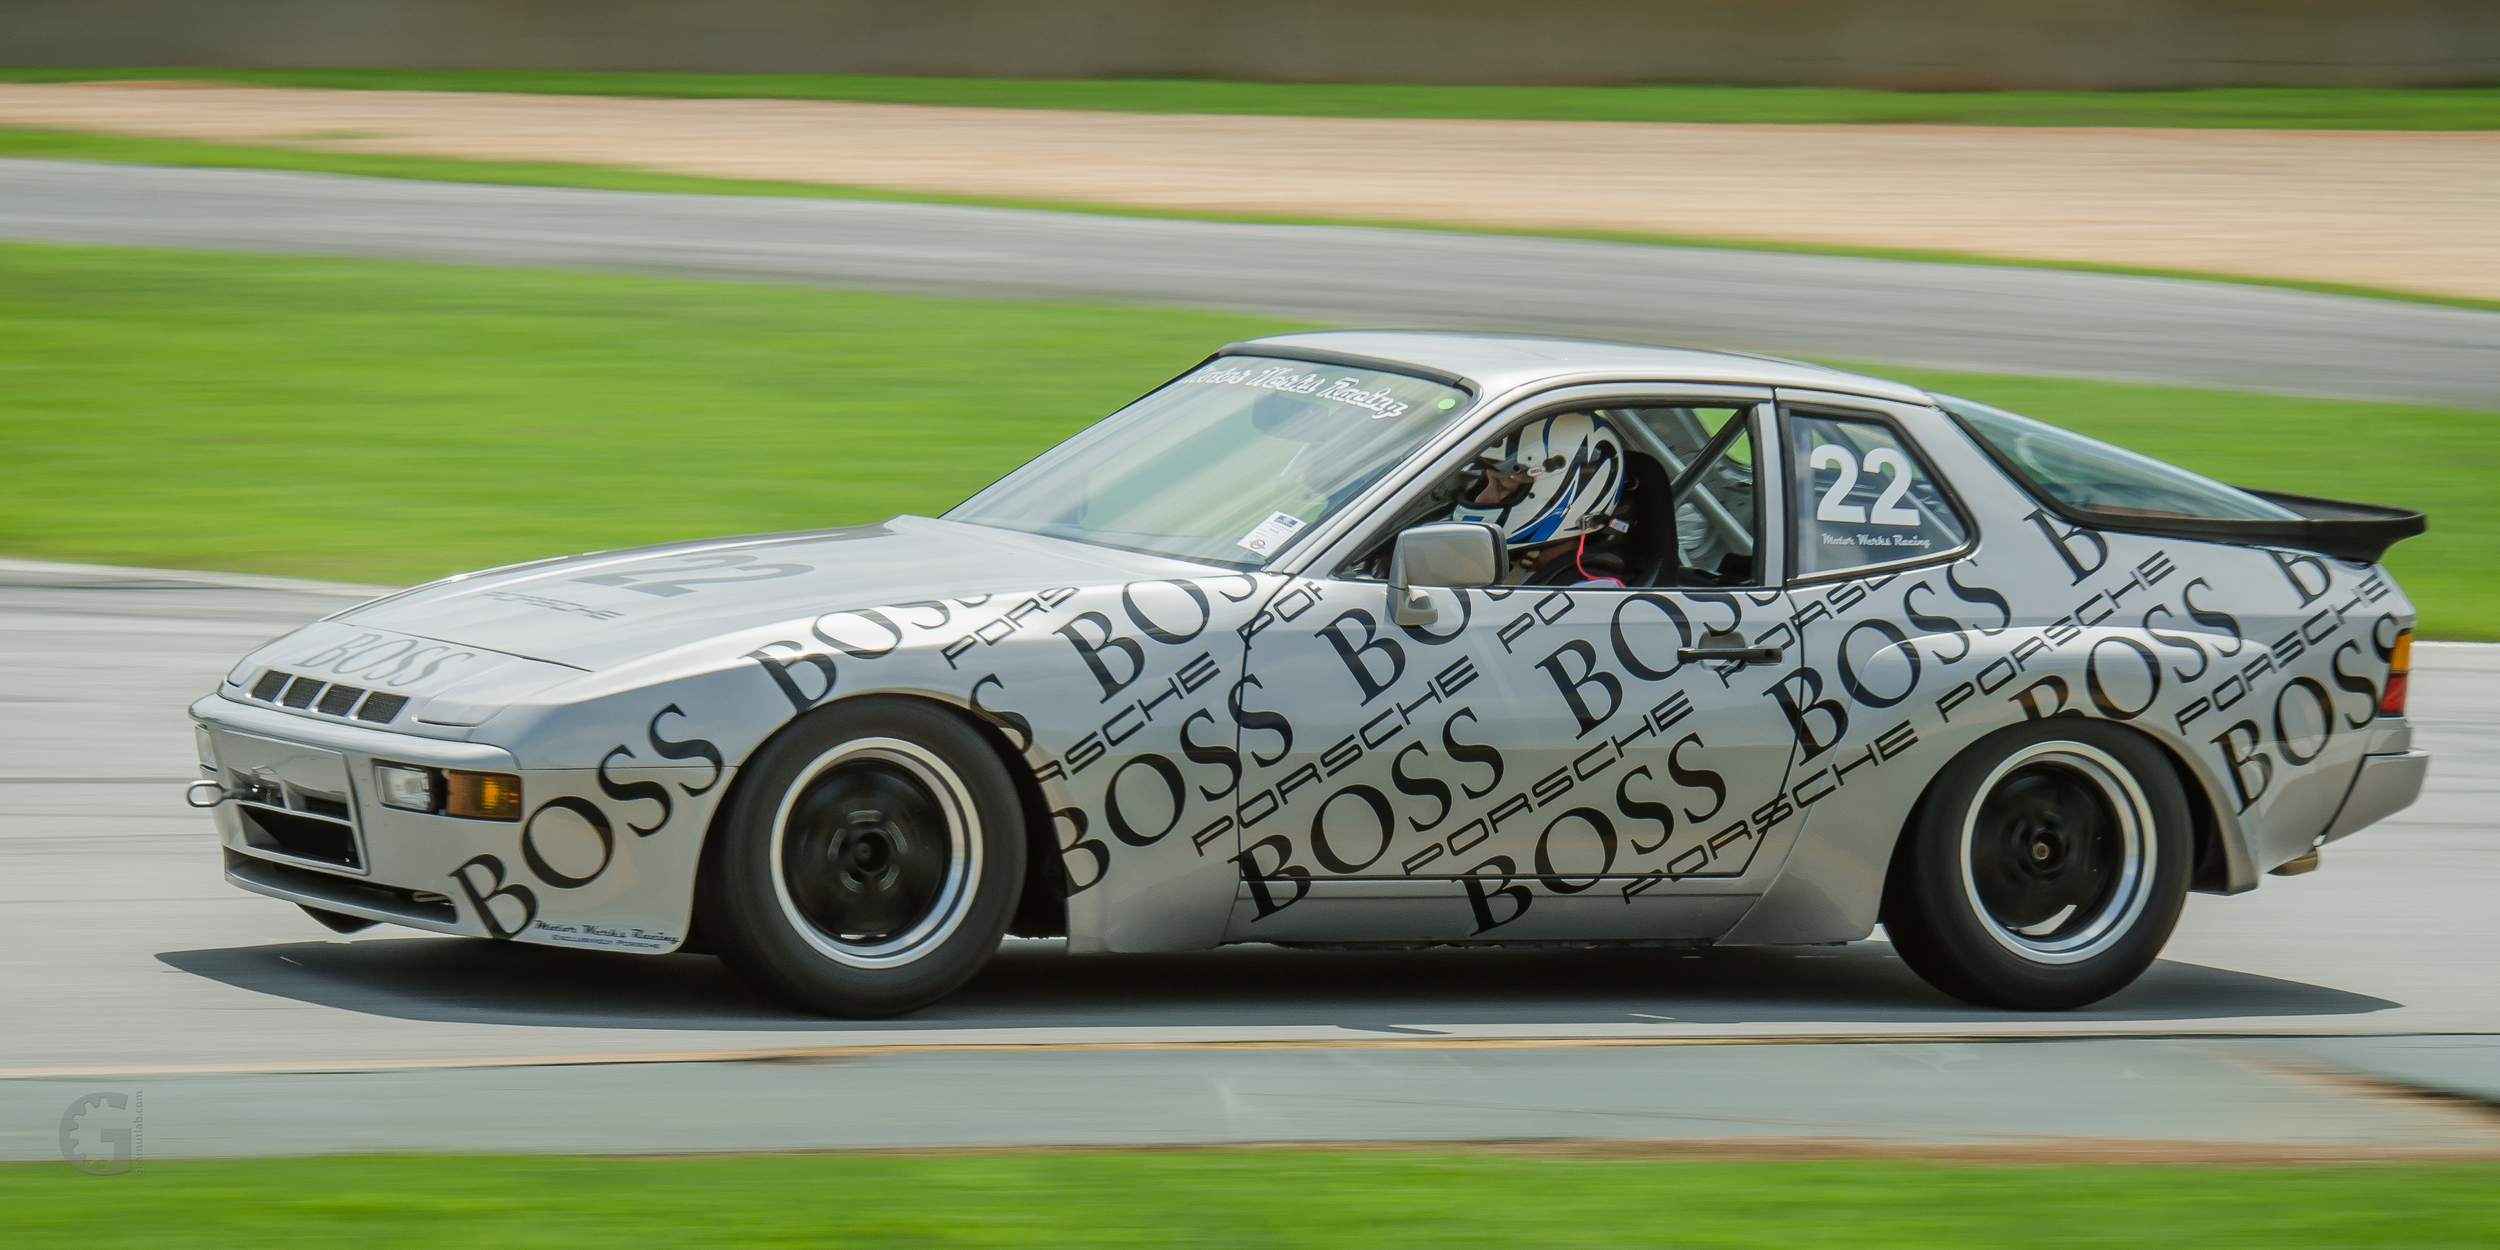 Motor Werks Racing Purpose Built Track Car- Porsche 924 GT Powered by our 1.8T Engine Conversion